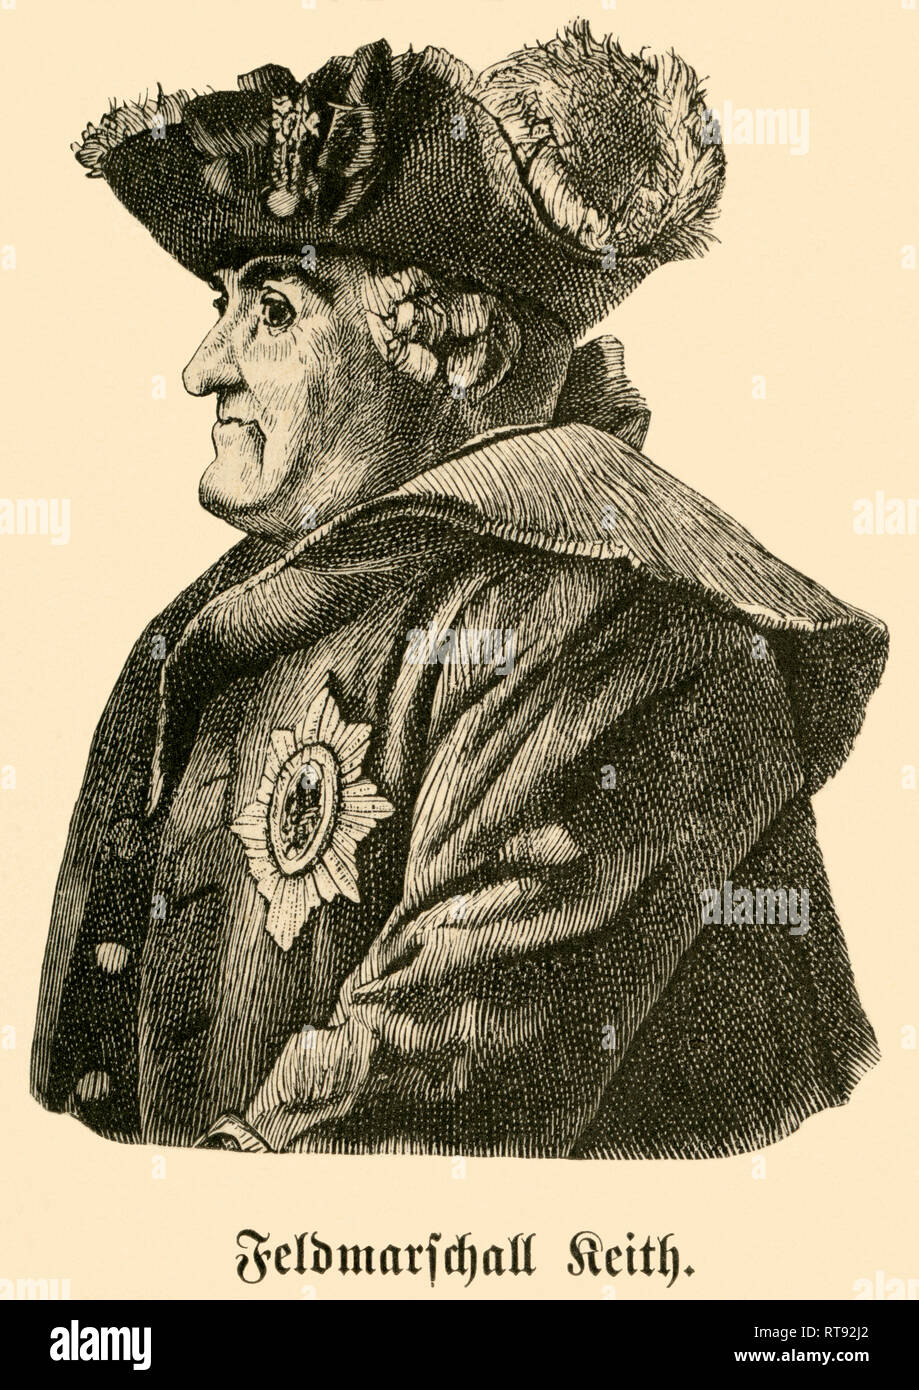 """James Keith, Prussian Field Marshall, portrait from: """"Deutschlands Heerführer"""" (German military leader), 1640-1894, portrayed by Sprößer, publishing house Ferdinand Hirt and son, Leipzig, 1895., Additional-Rights-Clearance-Info-Not-Available Stock Photo"""